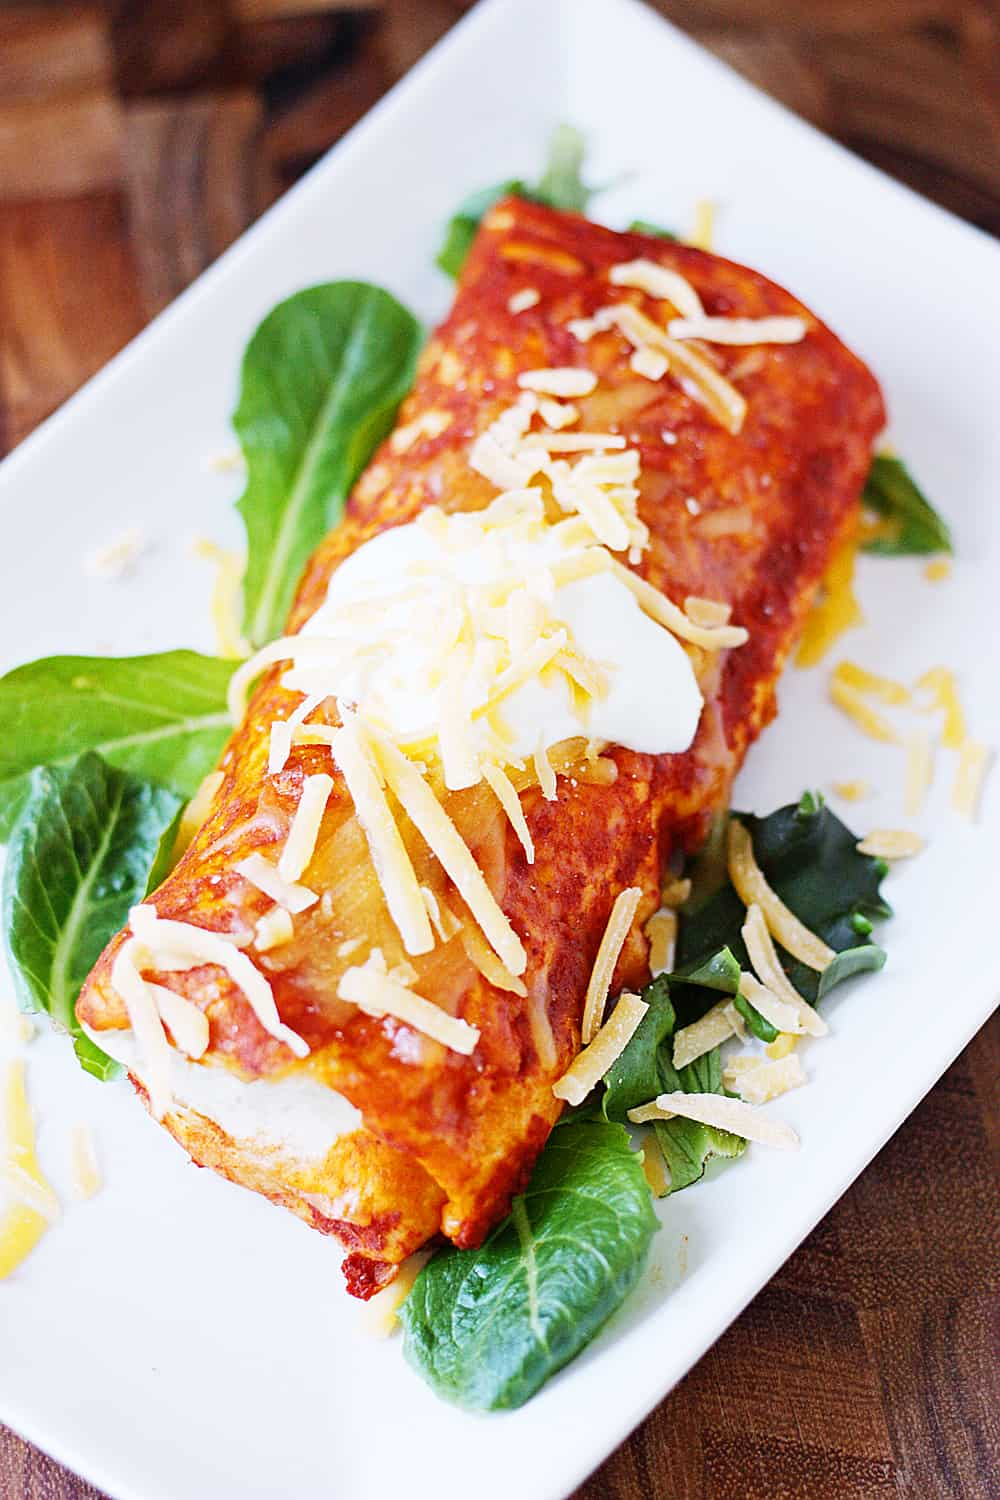 Enchilada style burritos feature enchilada sauce, dirty rice, and a versatile recipe that makes enough for two 9x13-inch pans. That means you can bake one tonight and freeze one for a future Taco Tuesday! | halfscratched.com #burrito #enchiladas #freezermeal #mexican #mexicanfood #mexicanrecipe #tacotuesday #cincodemayo